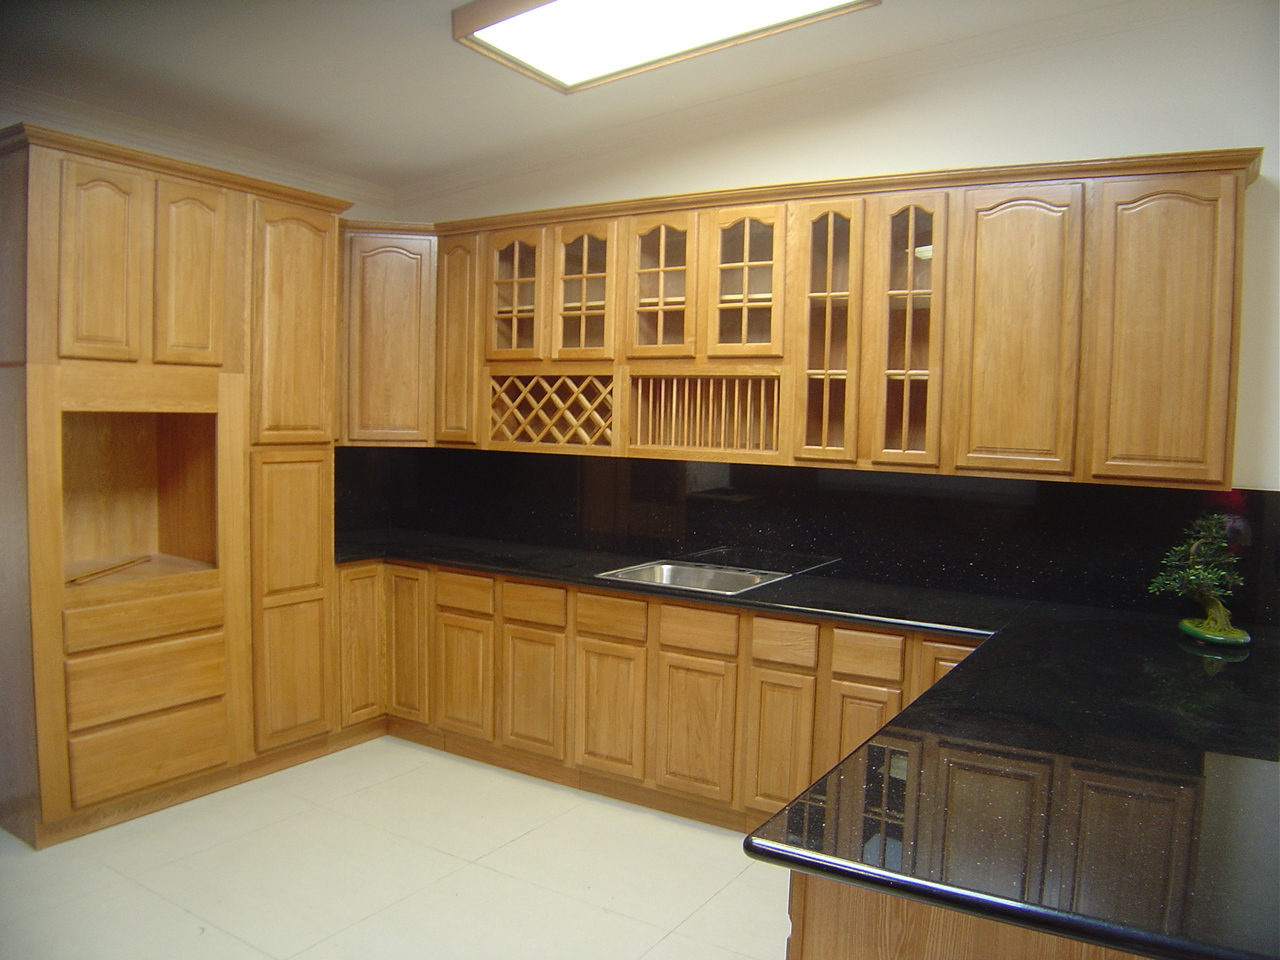 Kitchen design ideas cabinets